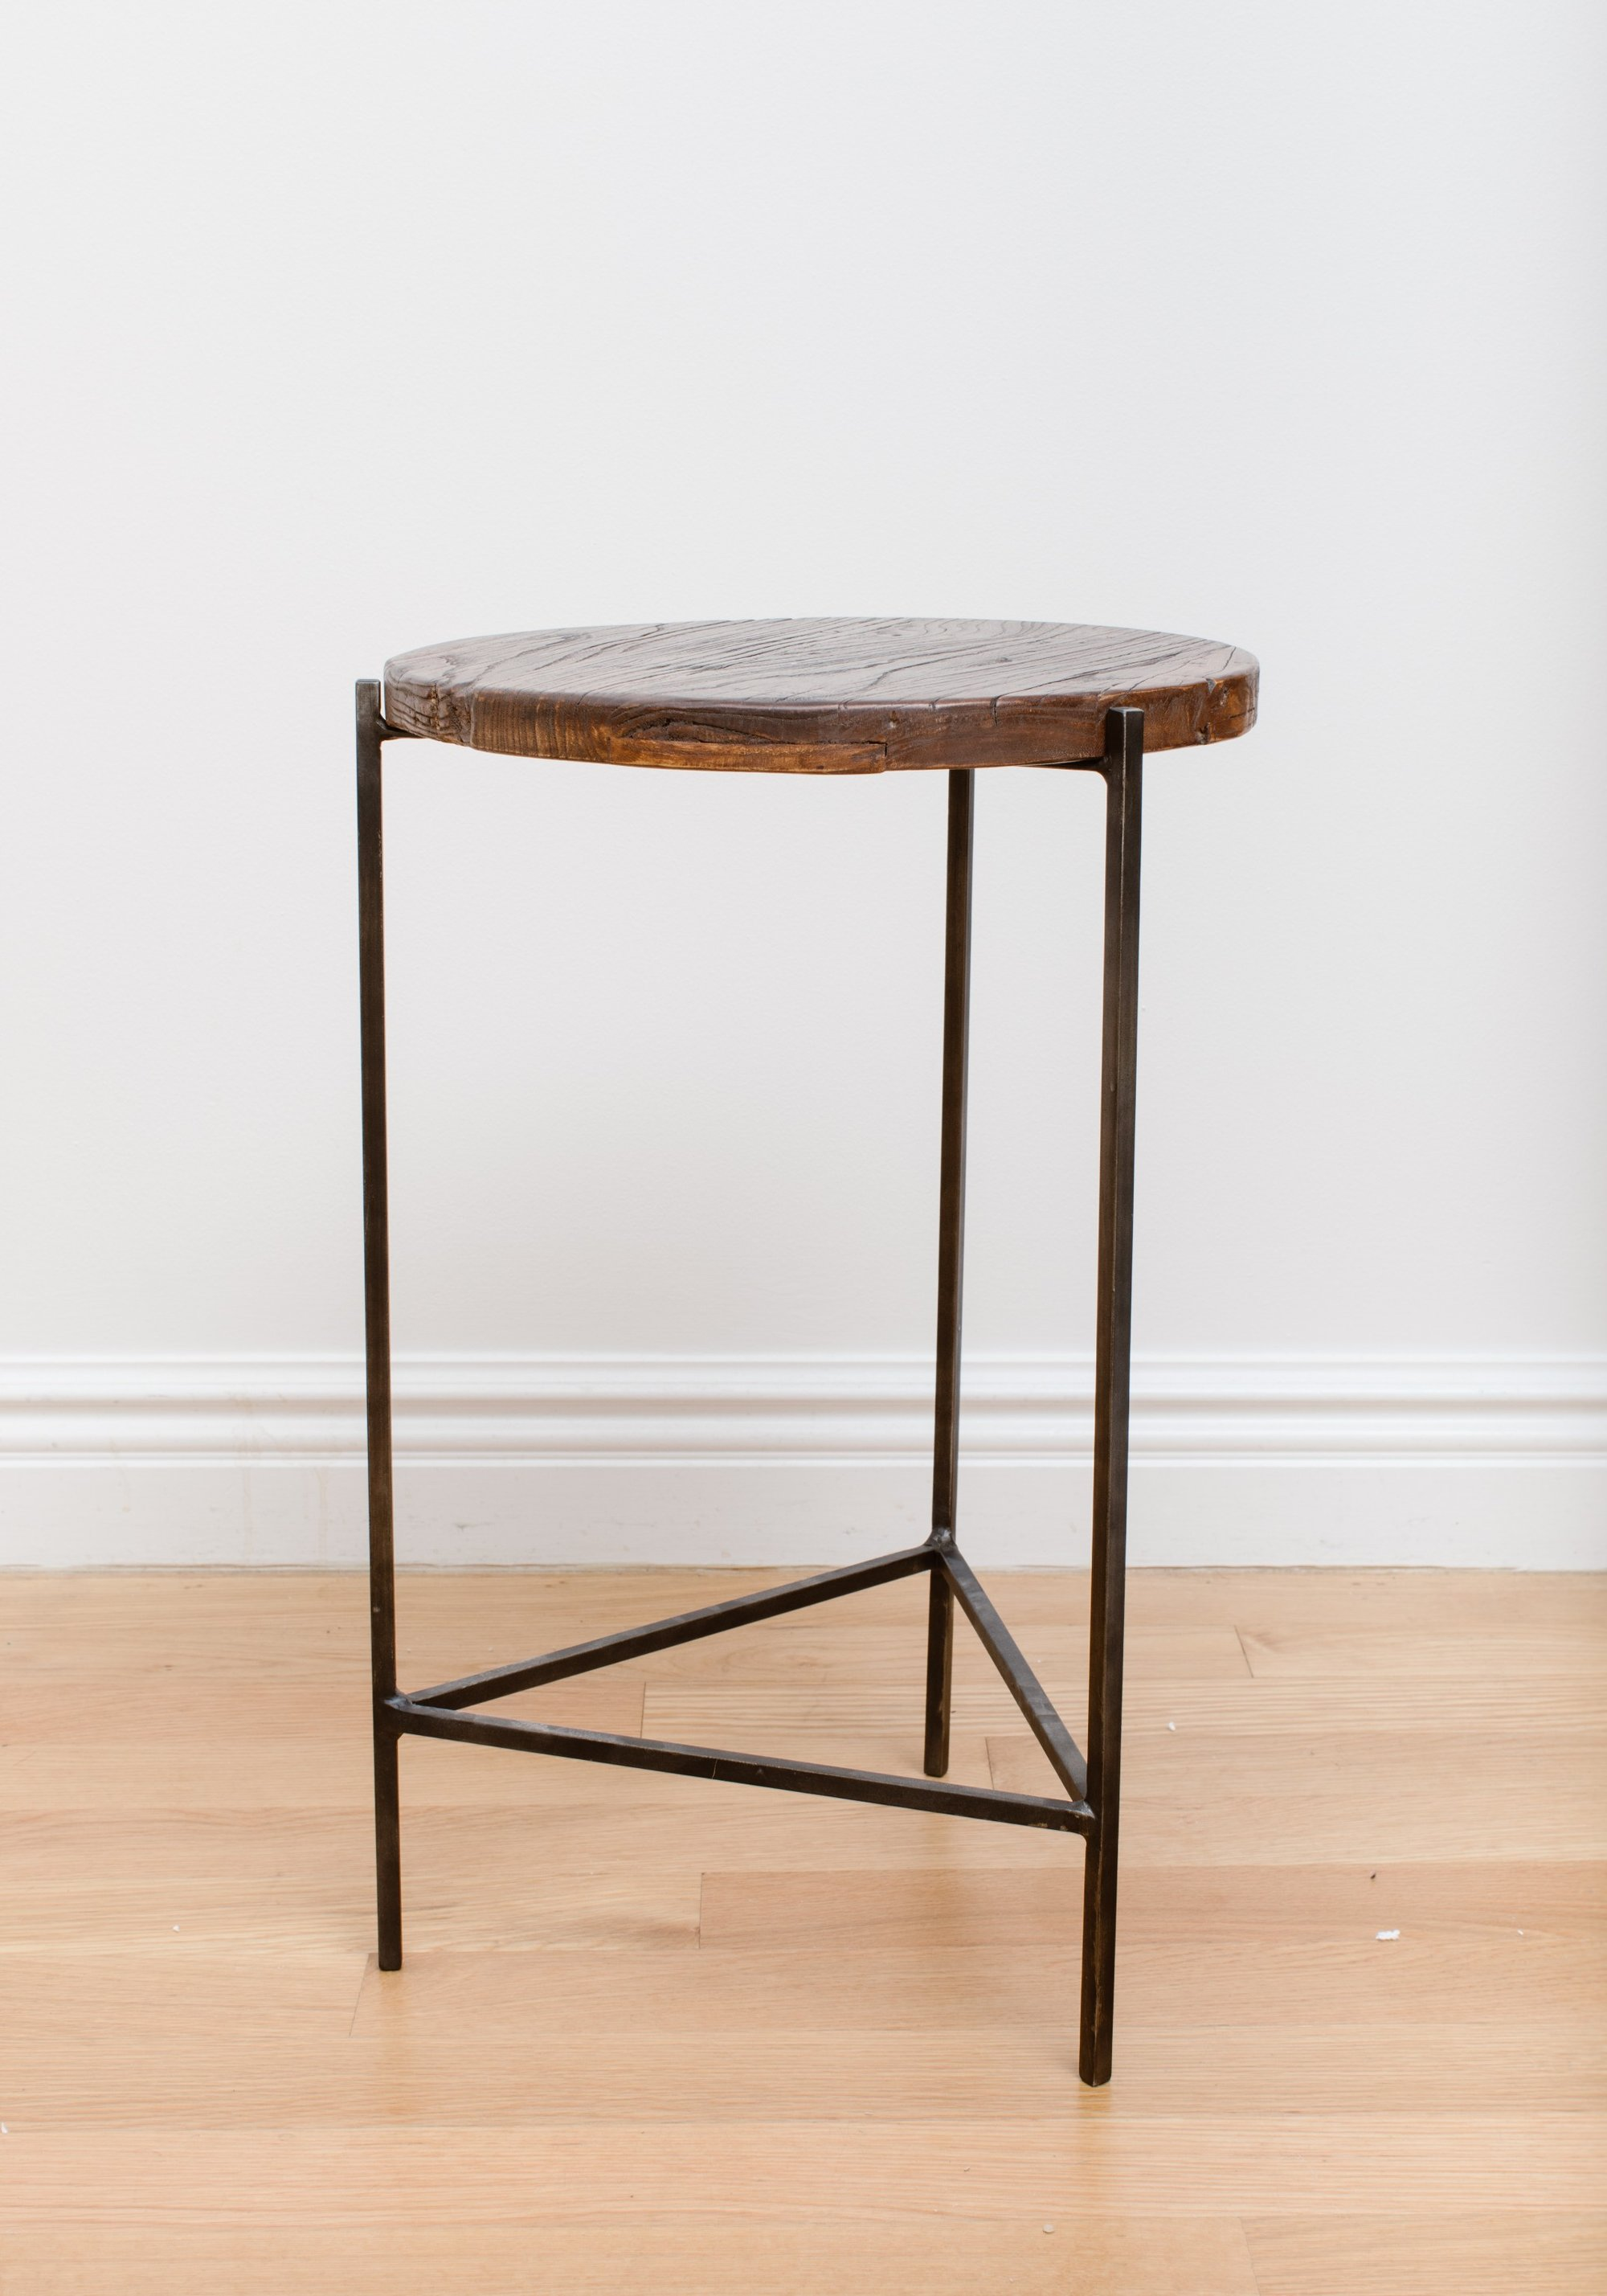 reclaimed wood circular side table the layer collective anton accent dining room chest dale tiffany floral lamp couch console grey mirrored bedside modern blue rustic white small